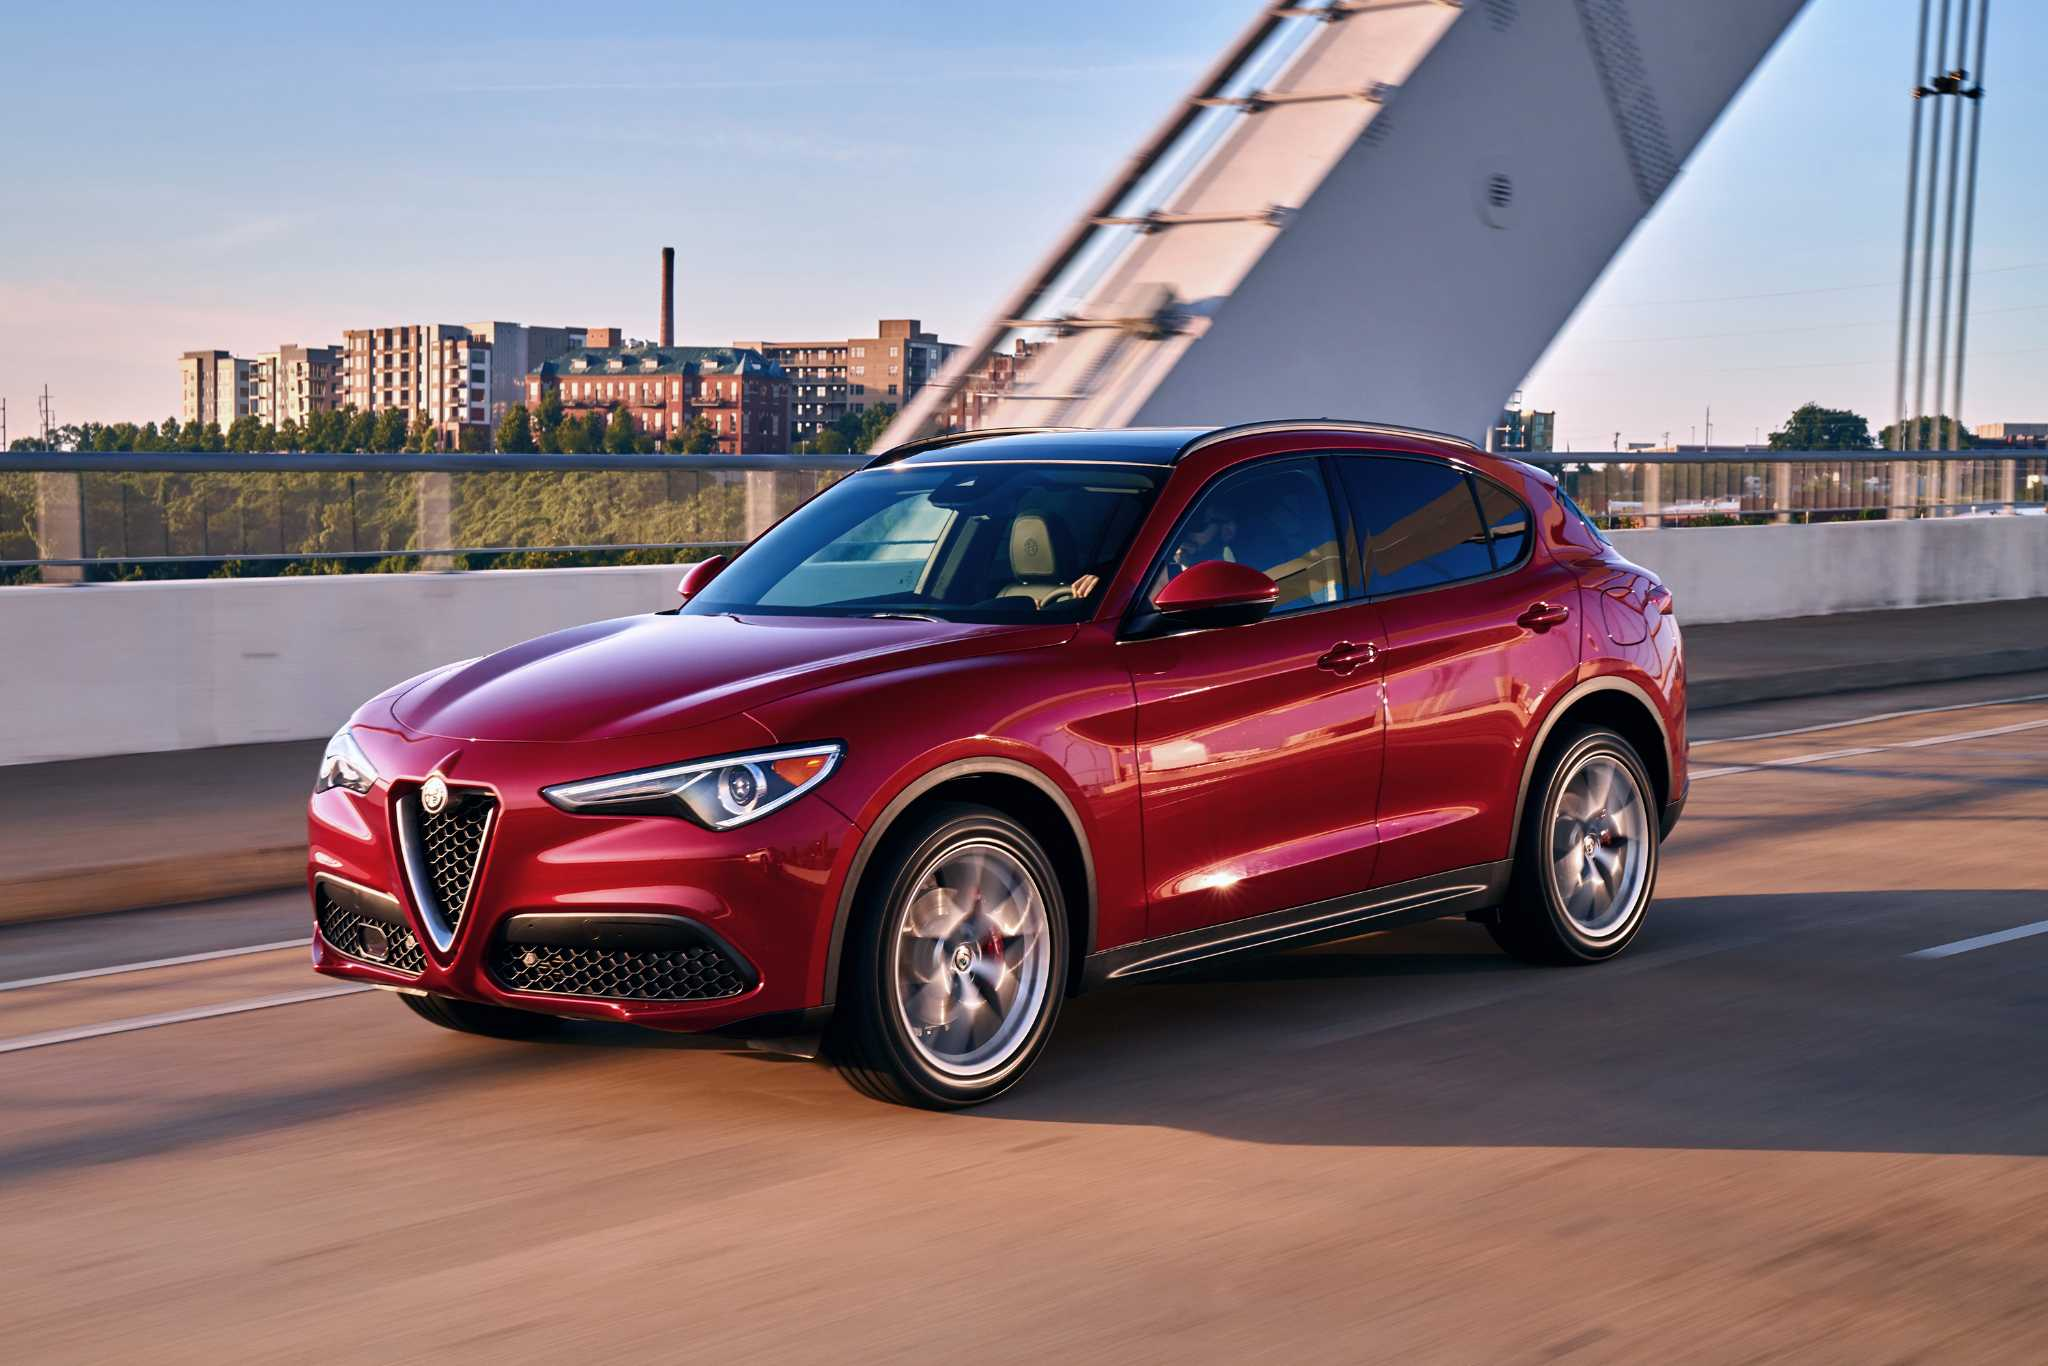 ALFA'S ALPHA CUVff: 'Best in class' is usually a cliché, but for the 2018 Stelvio, it's no brag, just fact